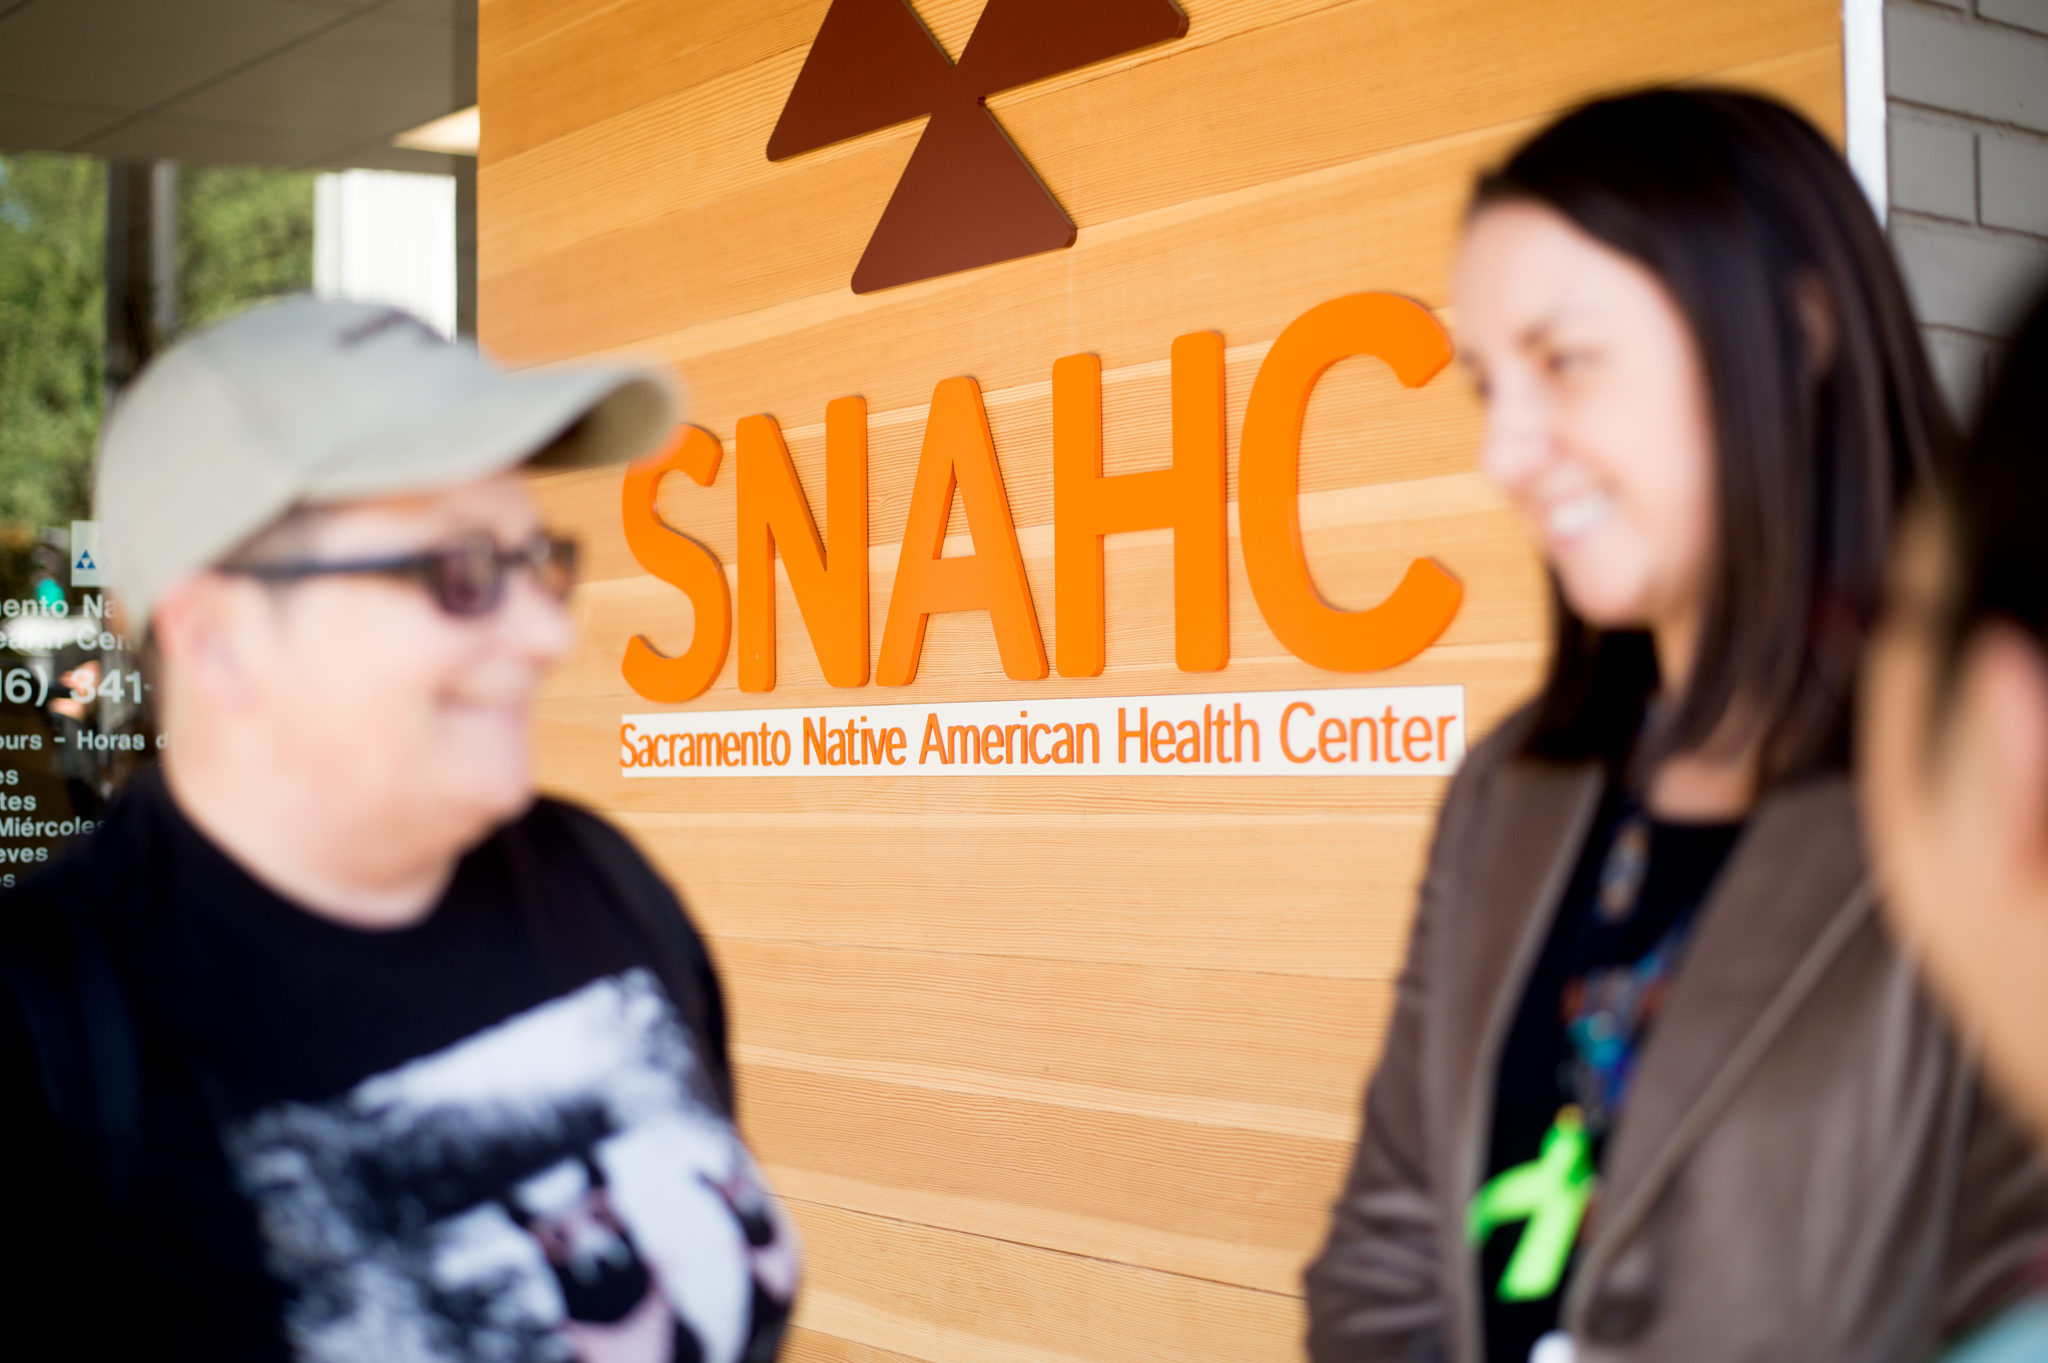 Sacramento Native American Health Center Photos Copyright Noah Berger / 2016